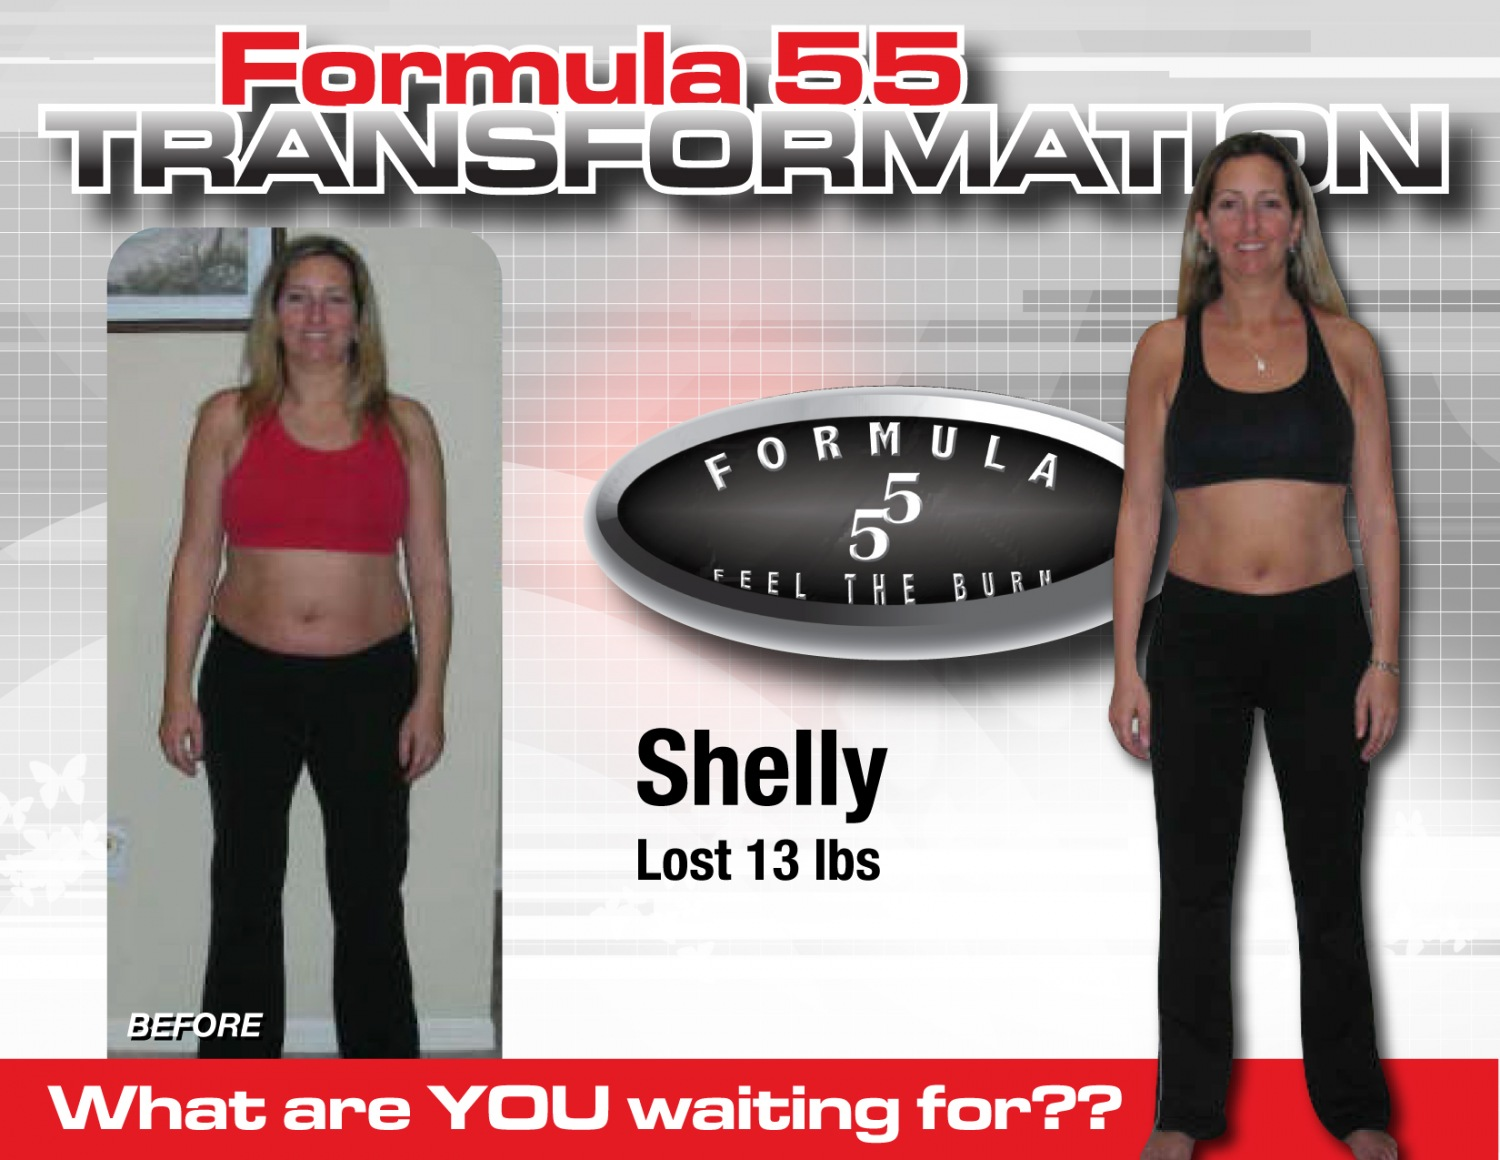 form-55-Transformation-Shelly.jpg